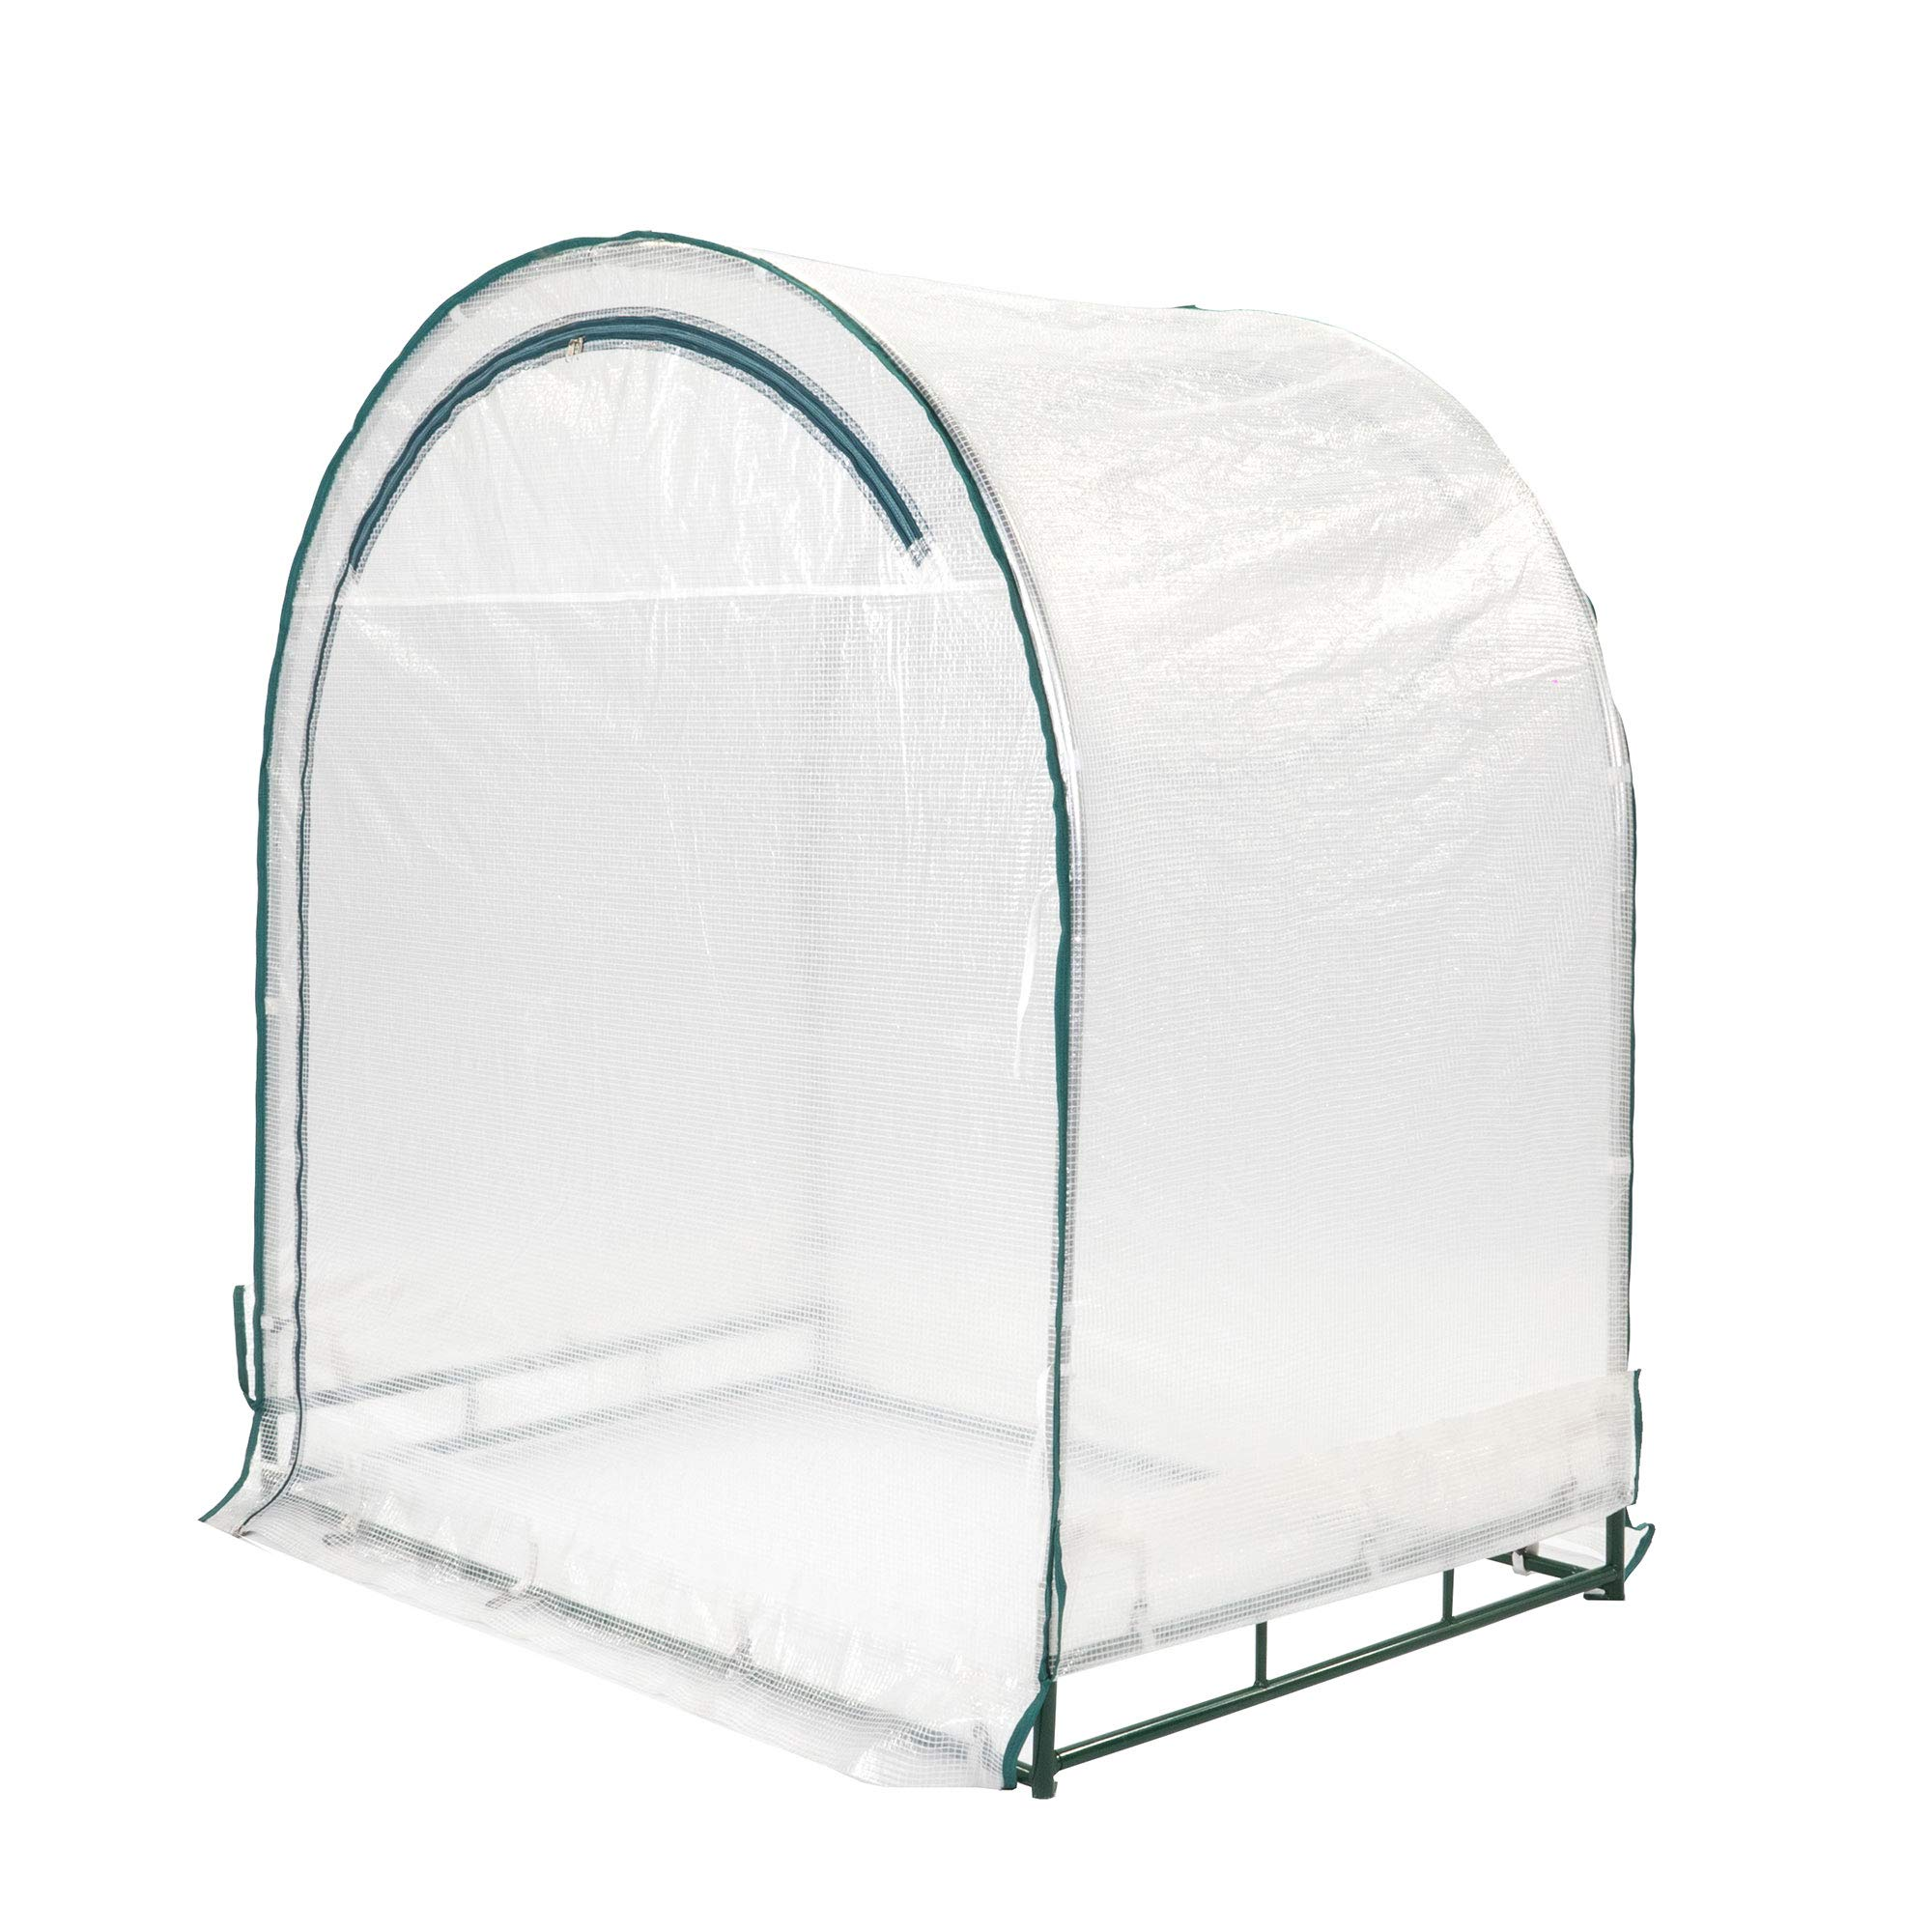 TrueShelter GH64 Portable Green House, Small, White Silver